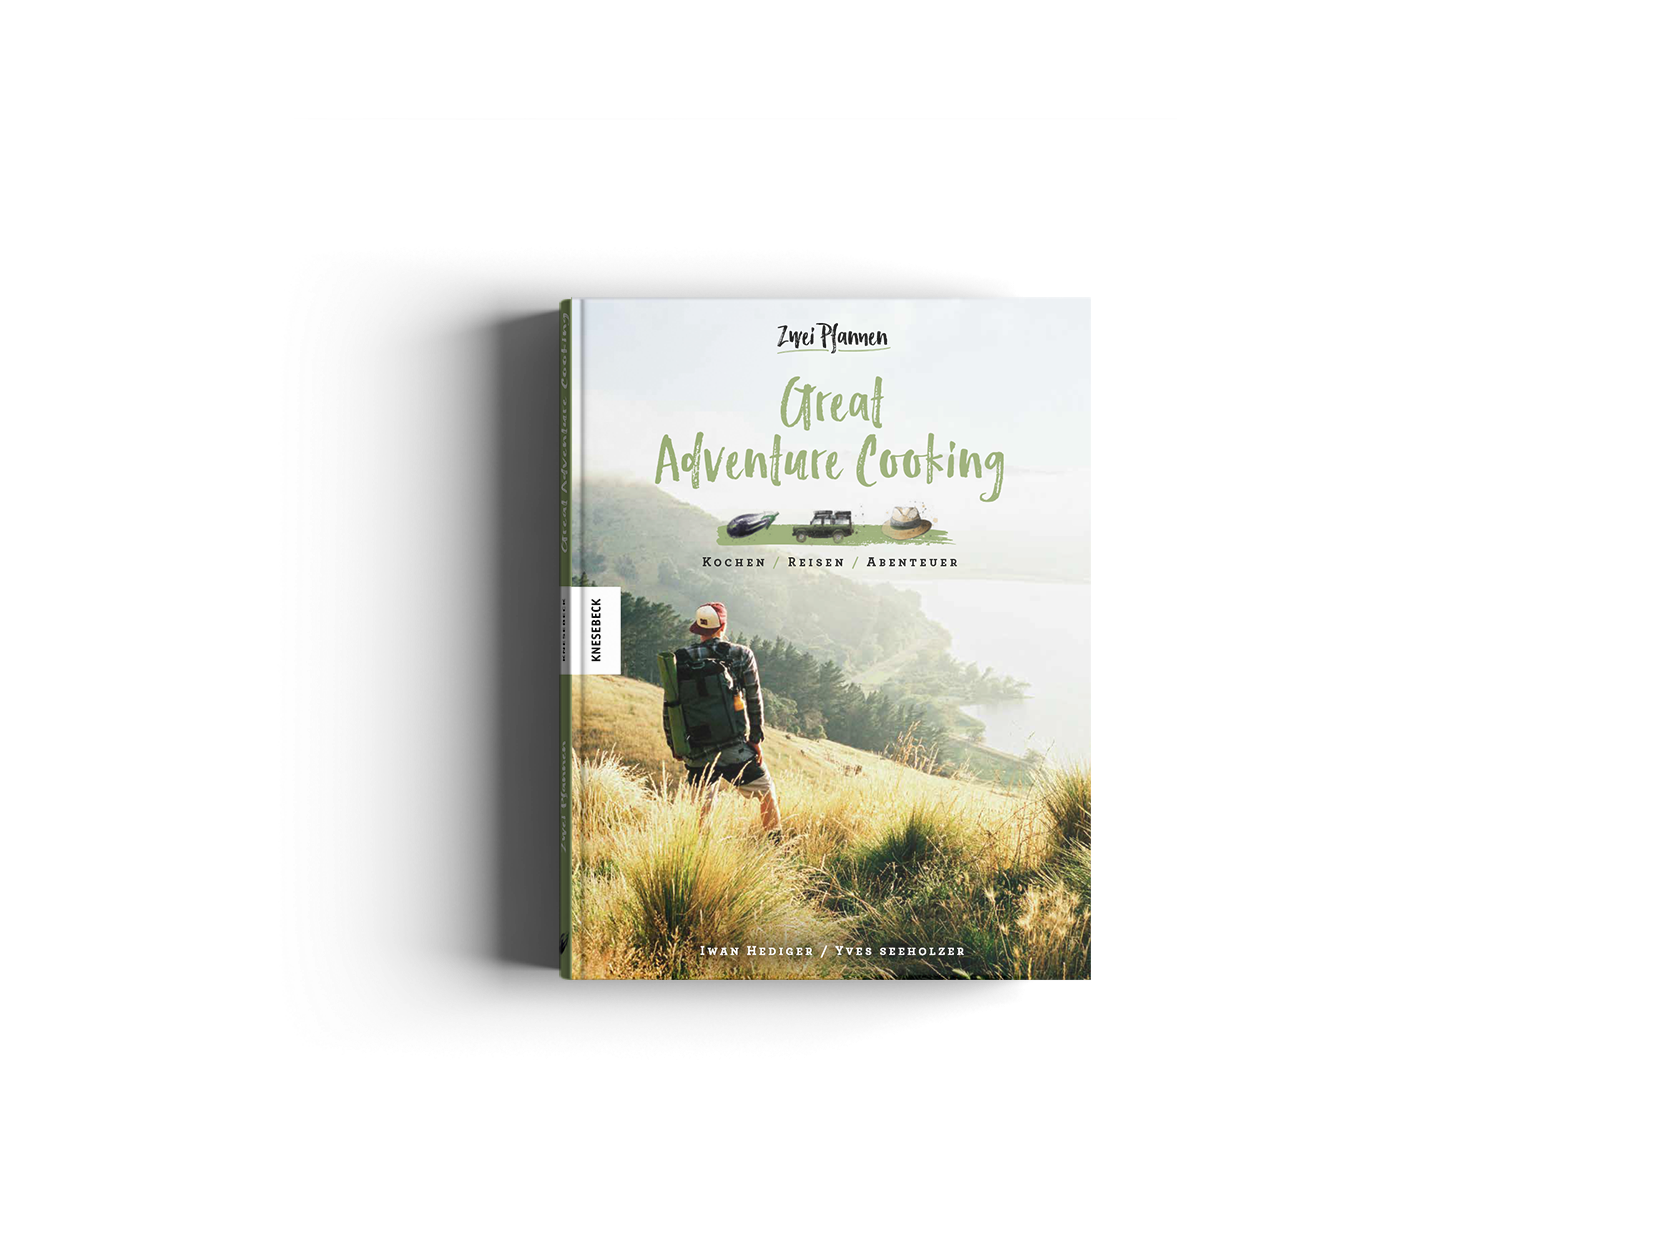 Great Adventure Cooking - Kochen, Reisen, Abenteuer